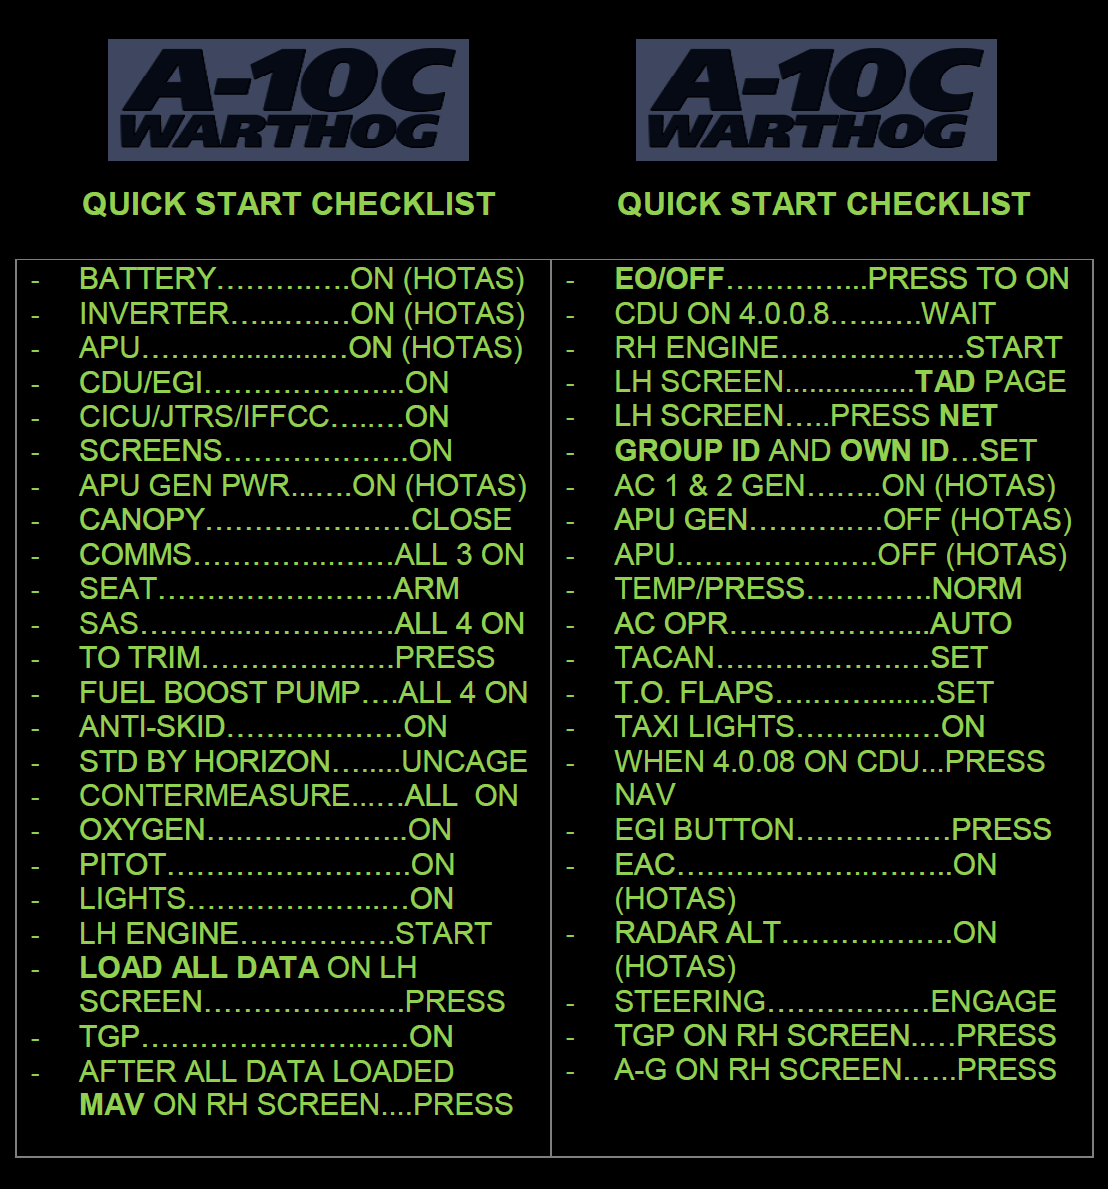 A-10C Quick Checklist for Night Ops.